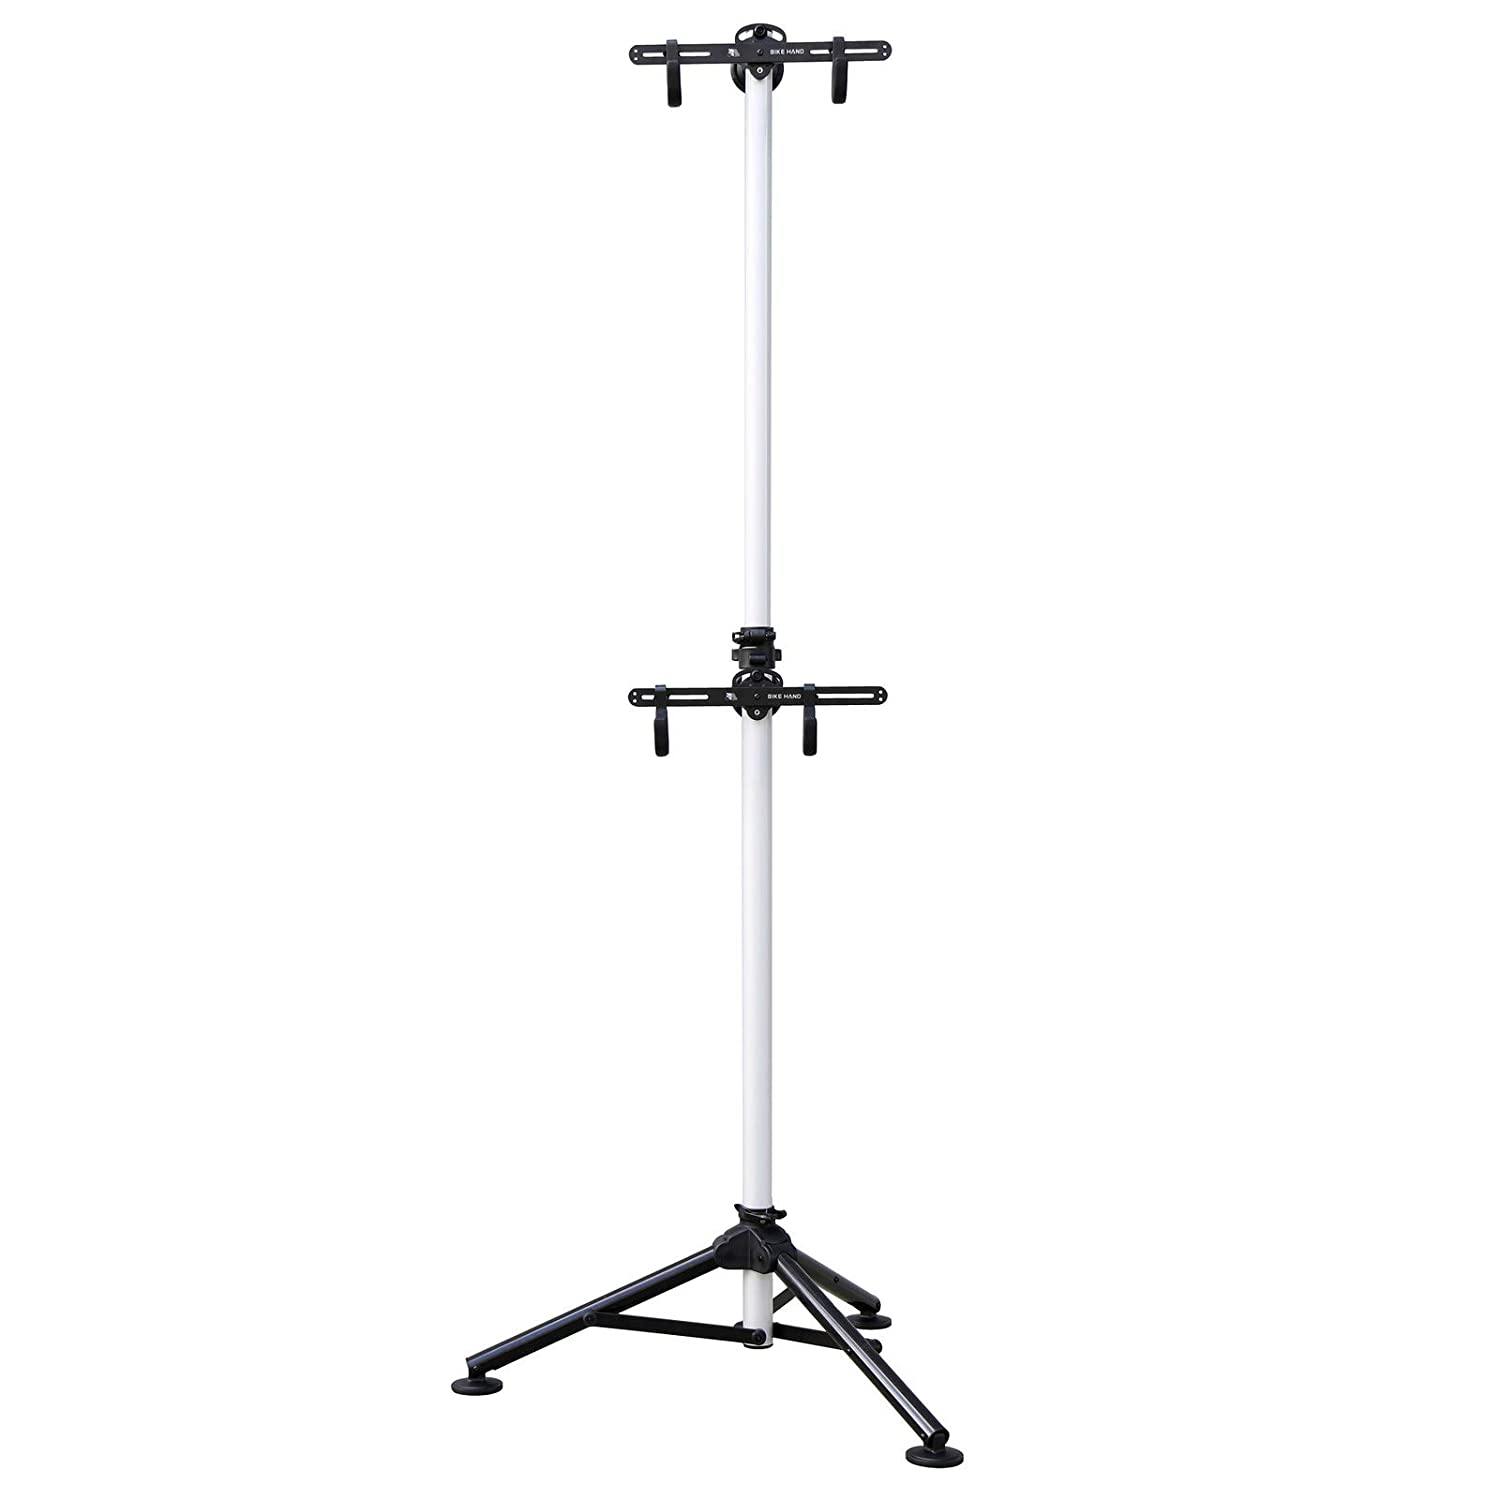 Bikehand Indoor 2 Bike Bicycle Vertical Gravity Hanger Floor Parking Rack Storage Stand for Garages or Apartments Nook Hook for Bicycles – Hanging Your Road, Mountain or Hybrid Bikes